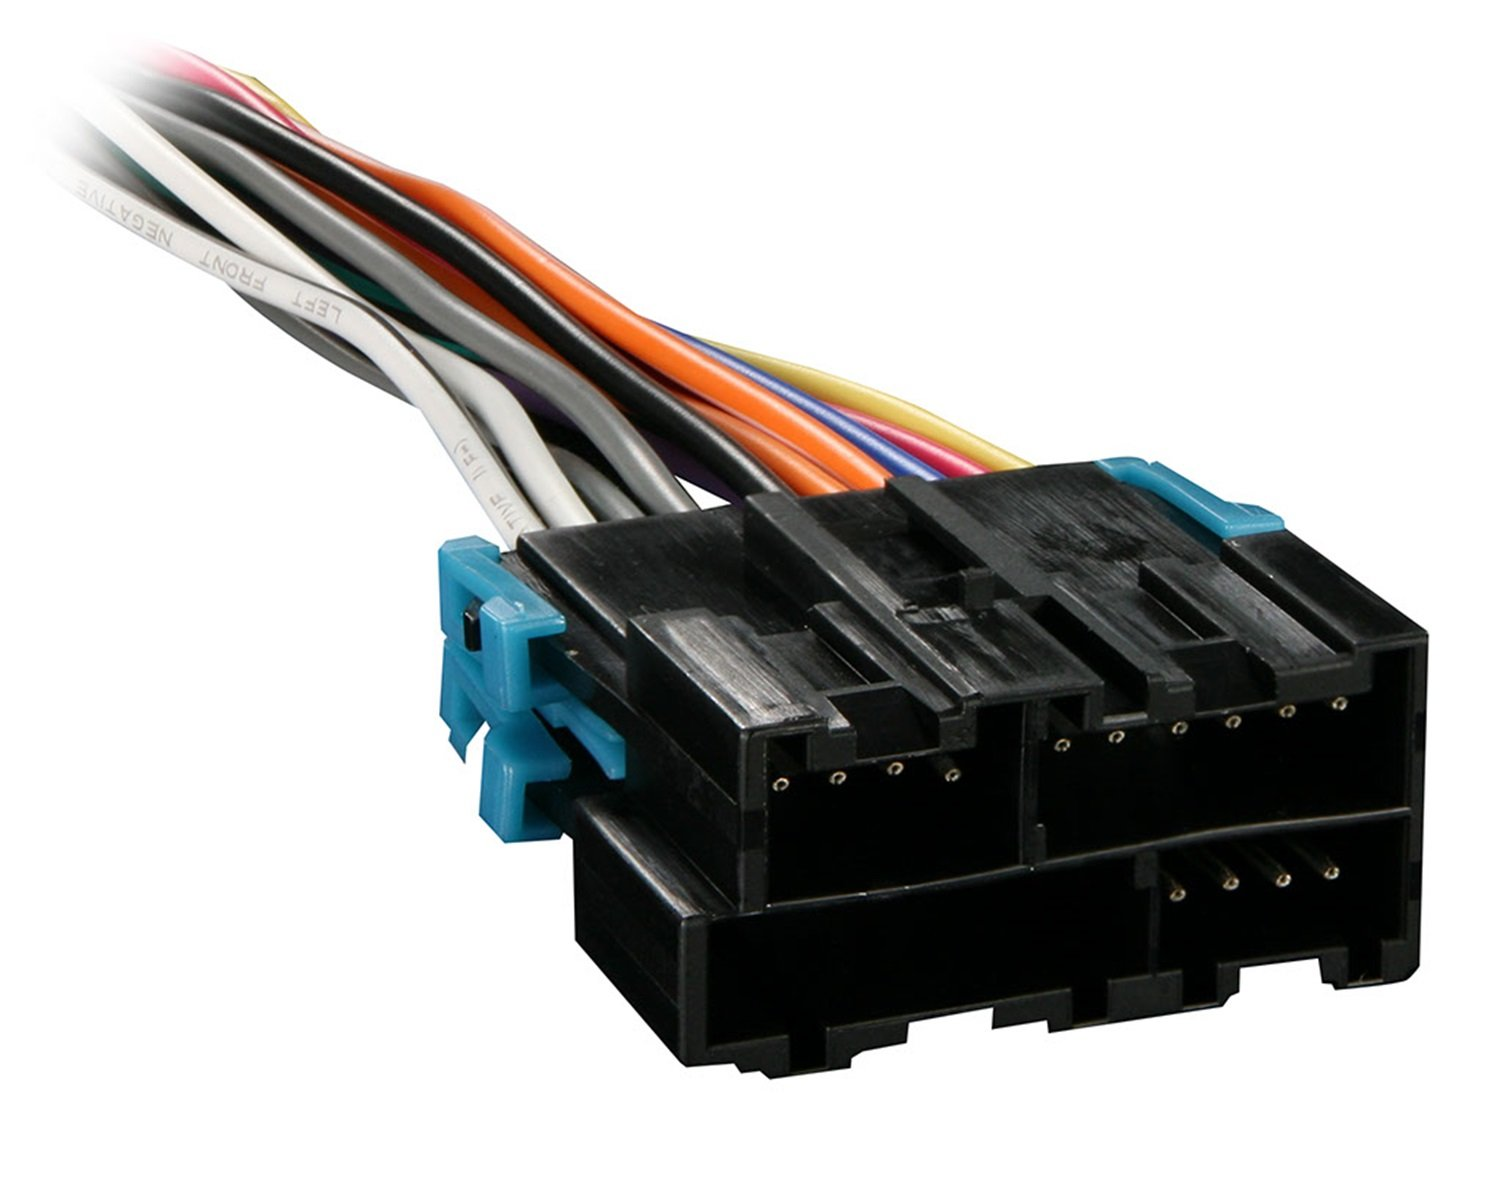 61 CwjZt1hL._SL1500_ radio wiring harnesses amazon com universal stereo wiring harness at readyjetset.co